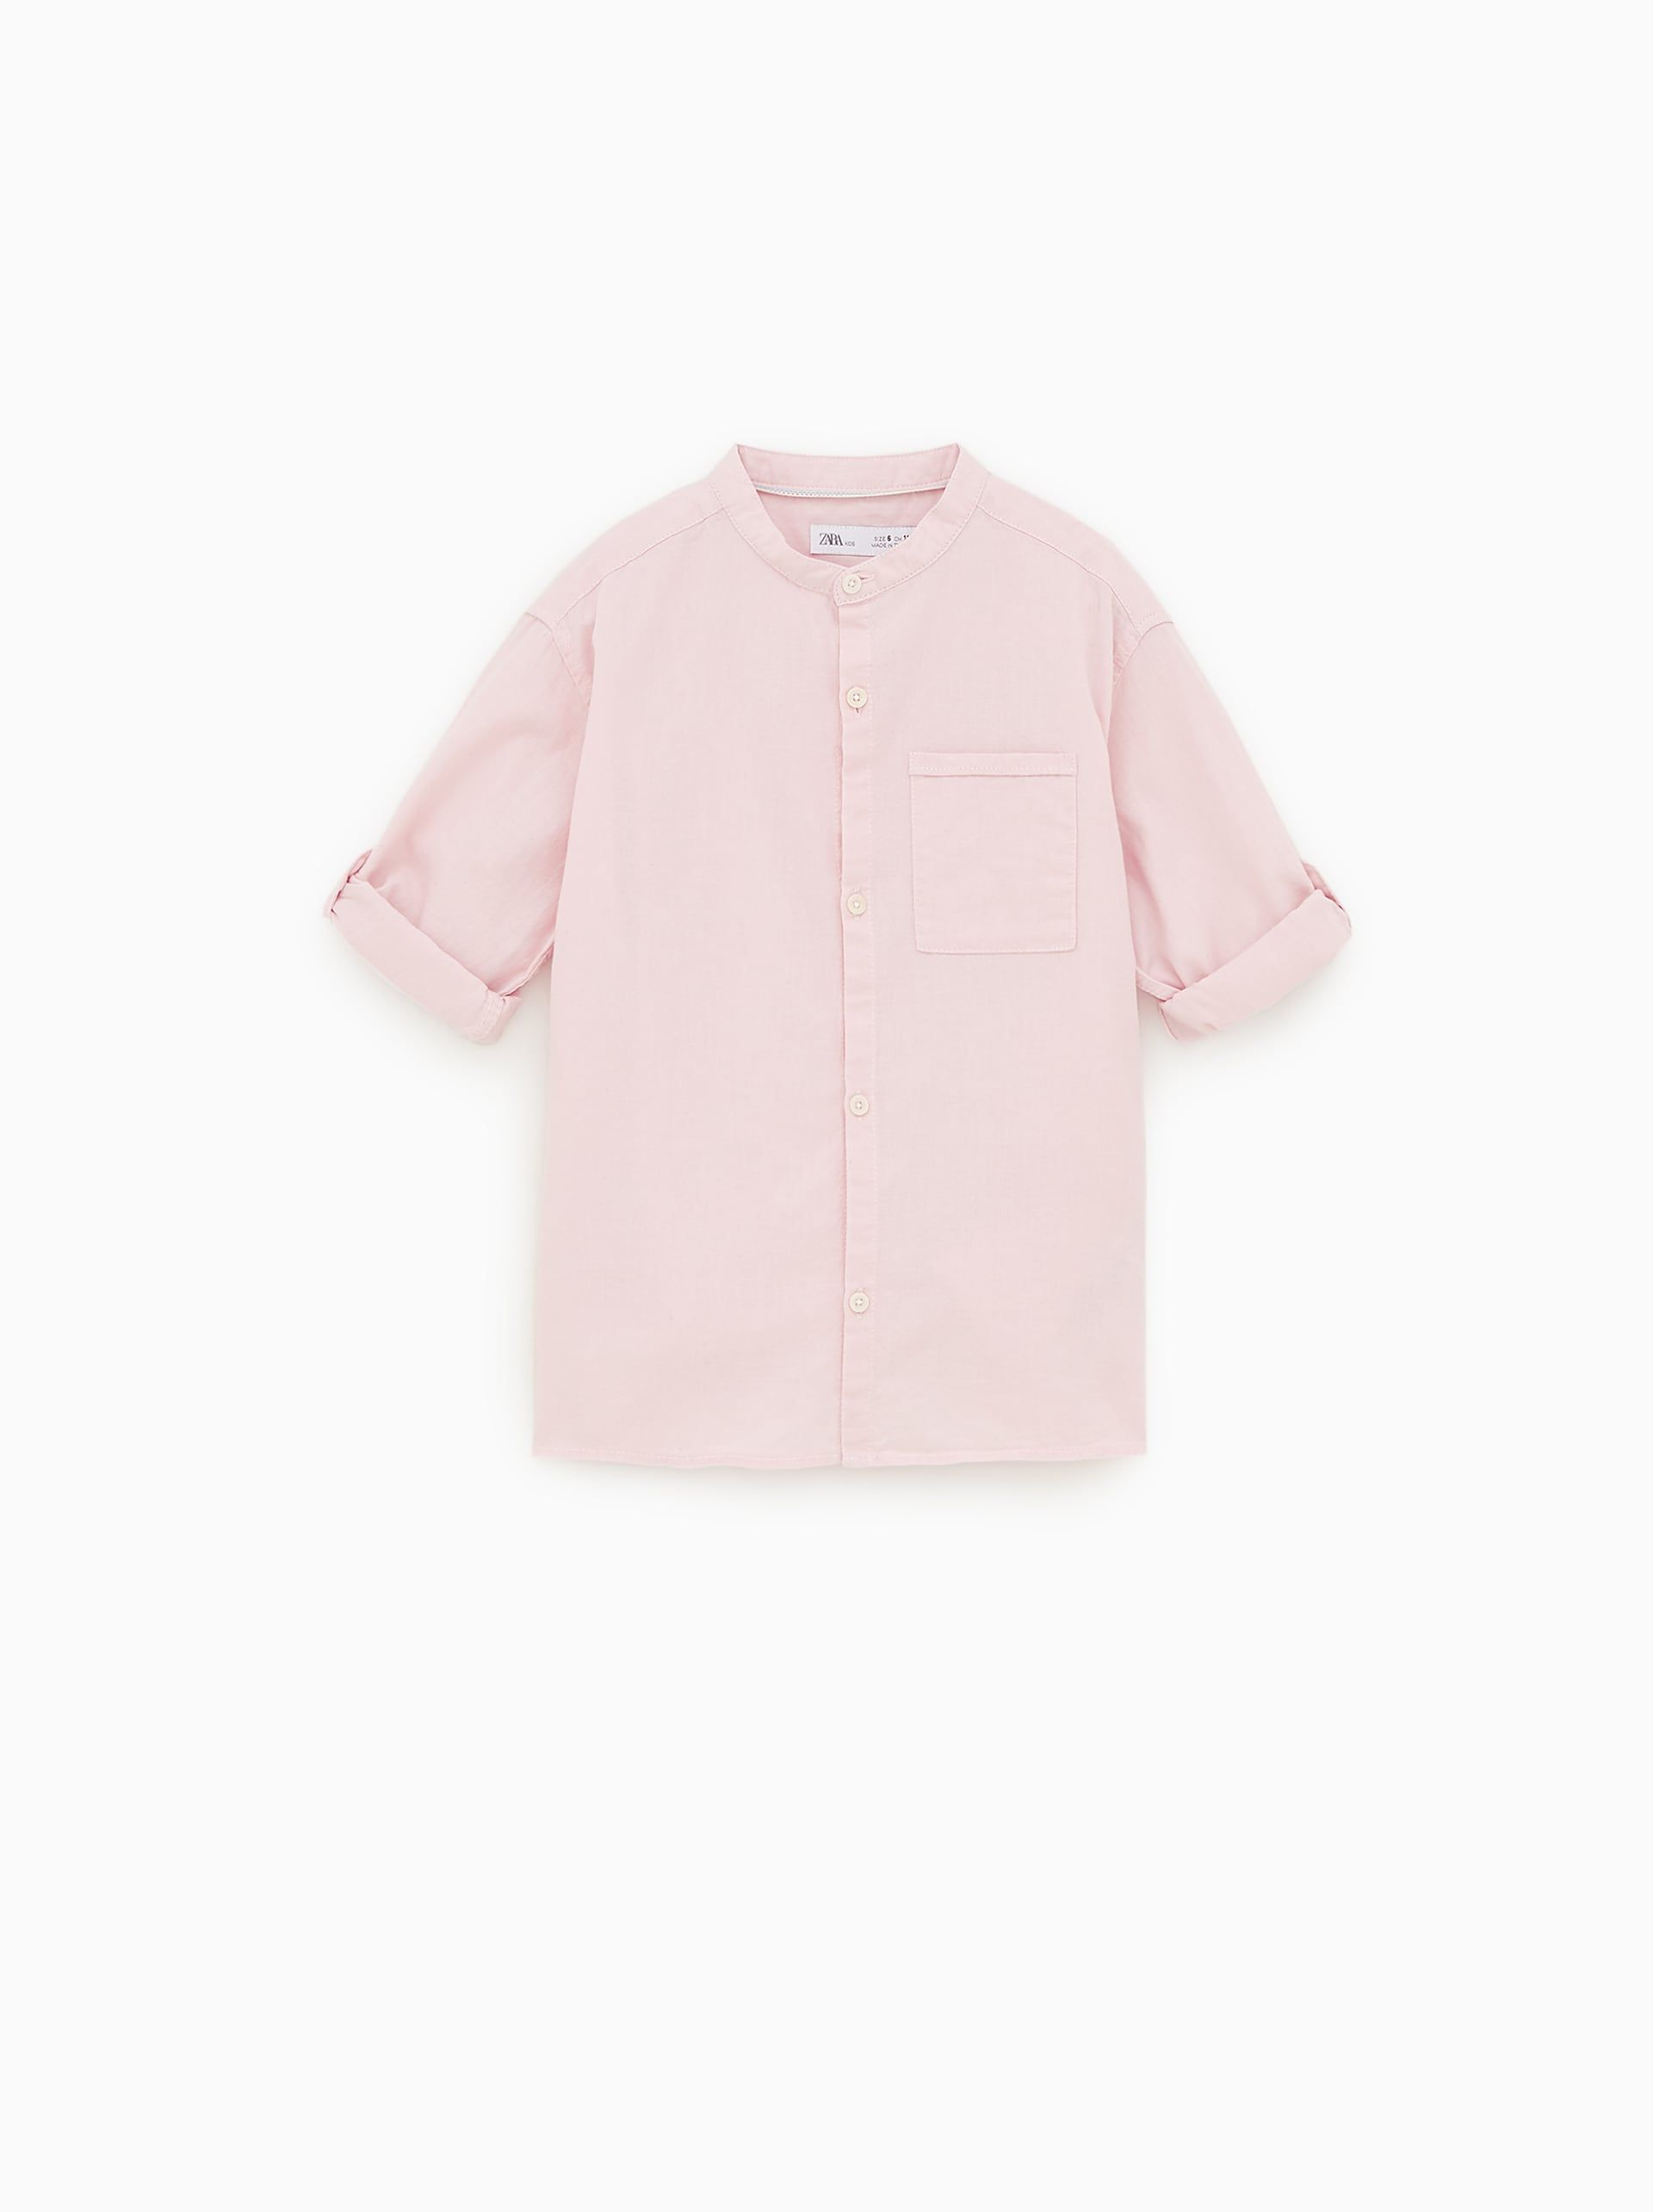 1276b27ec TEXTURED SHIRT WITH POCKET - Item available in more colors | FKIDS ...